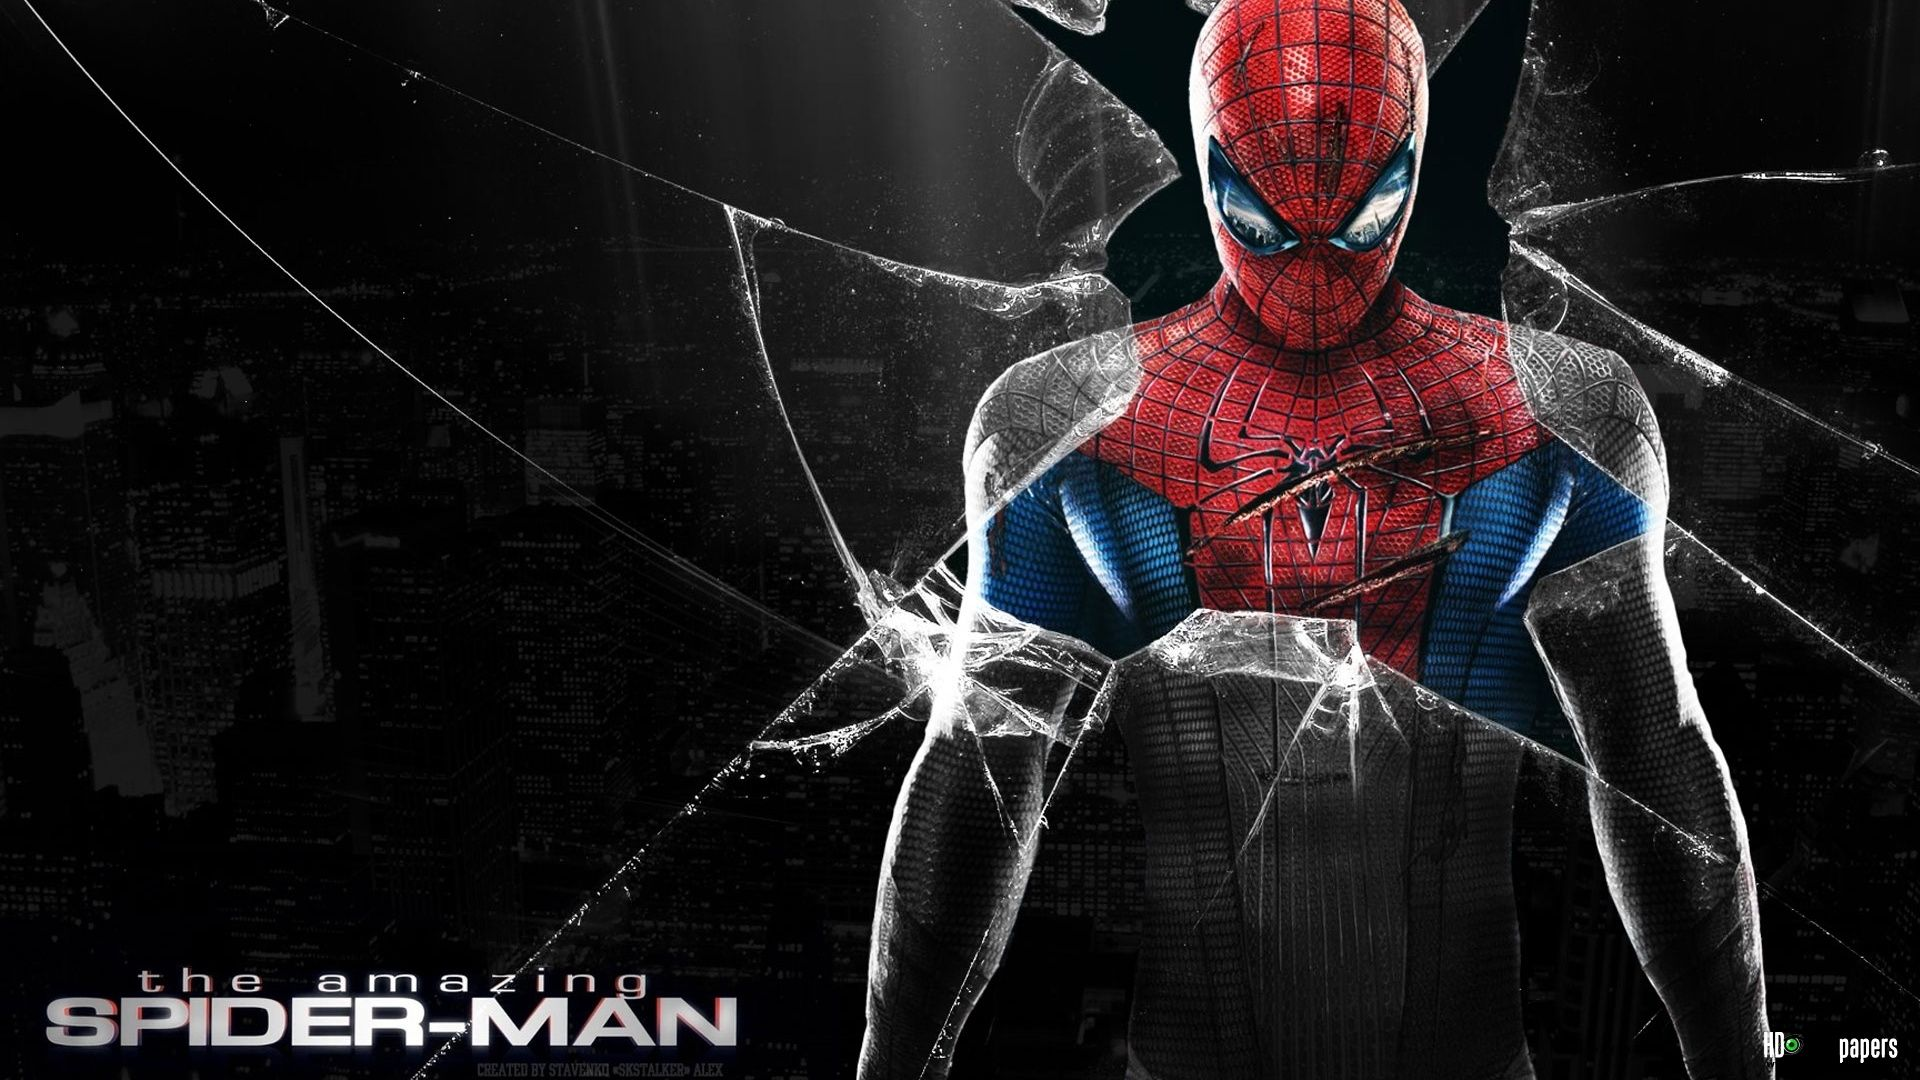 spiderman hd photos - Google Search